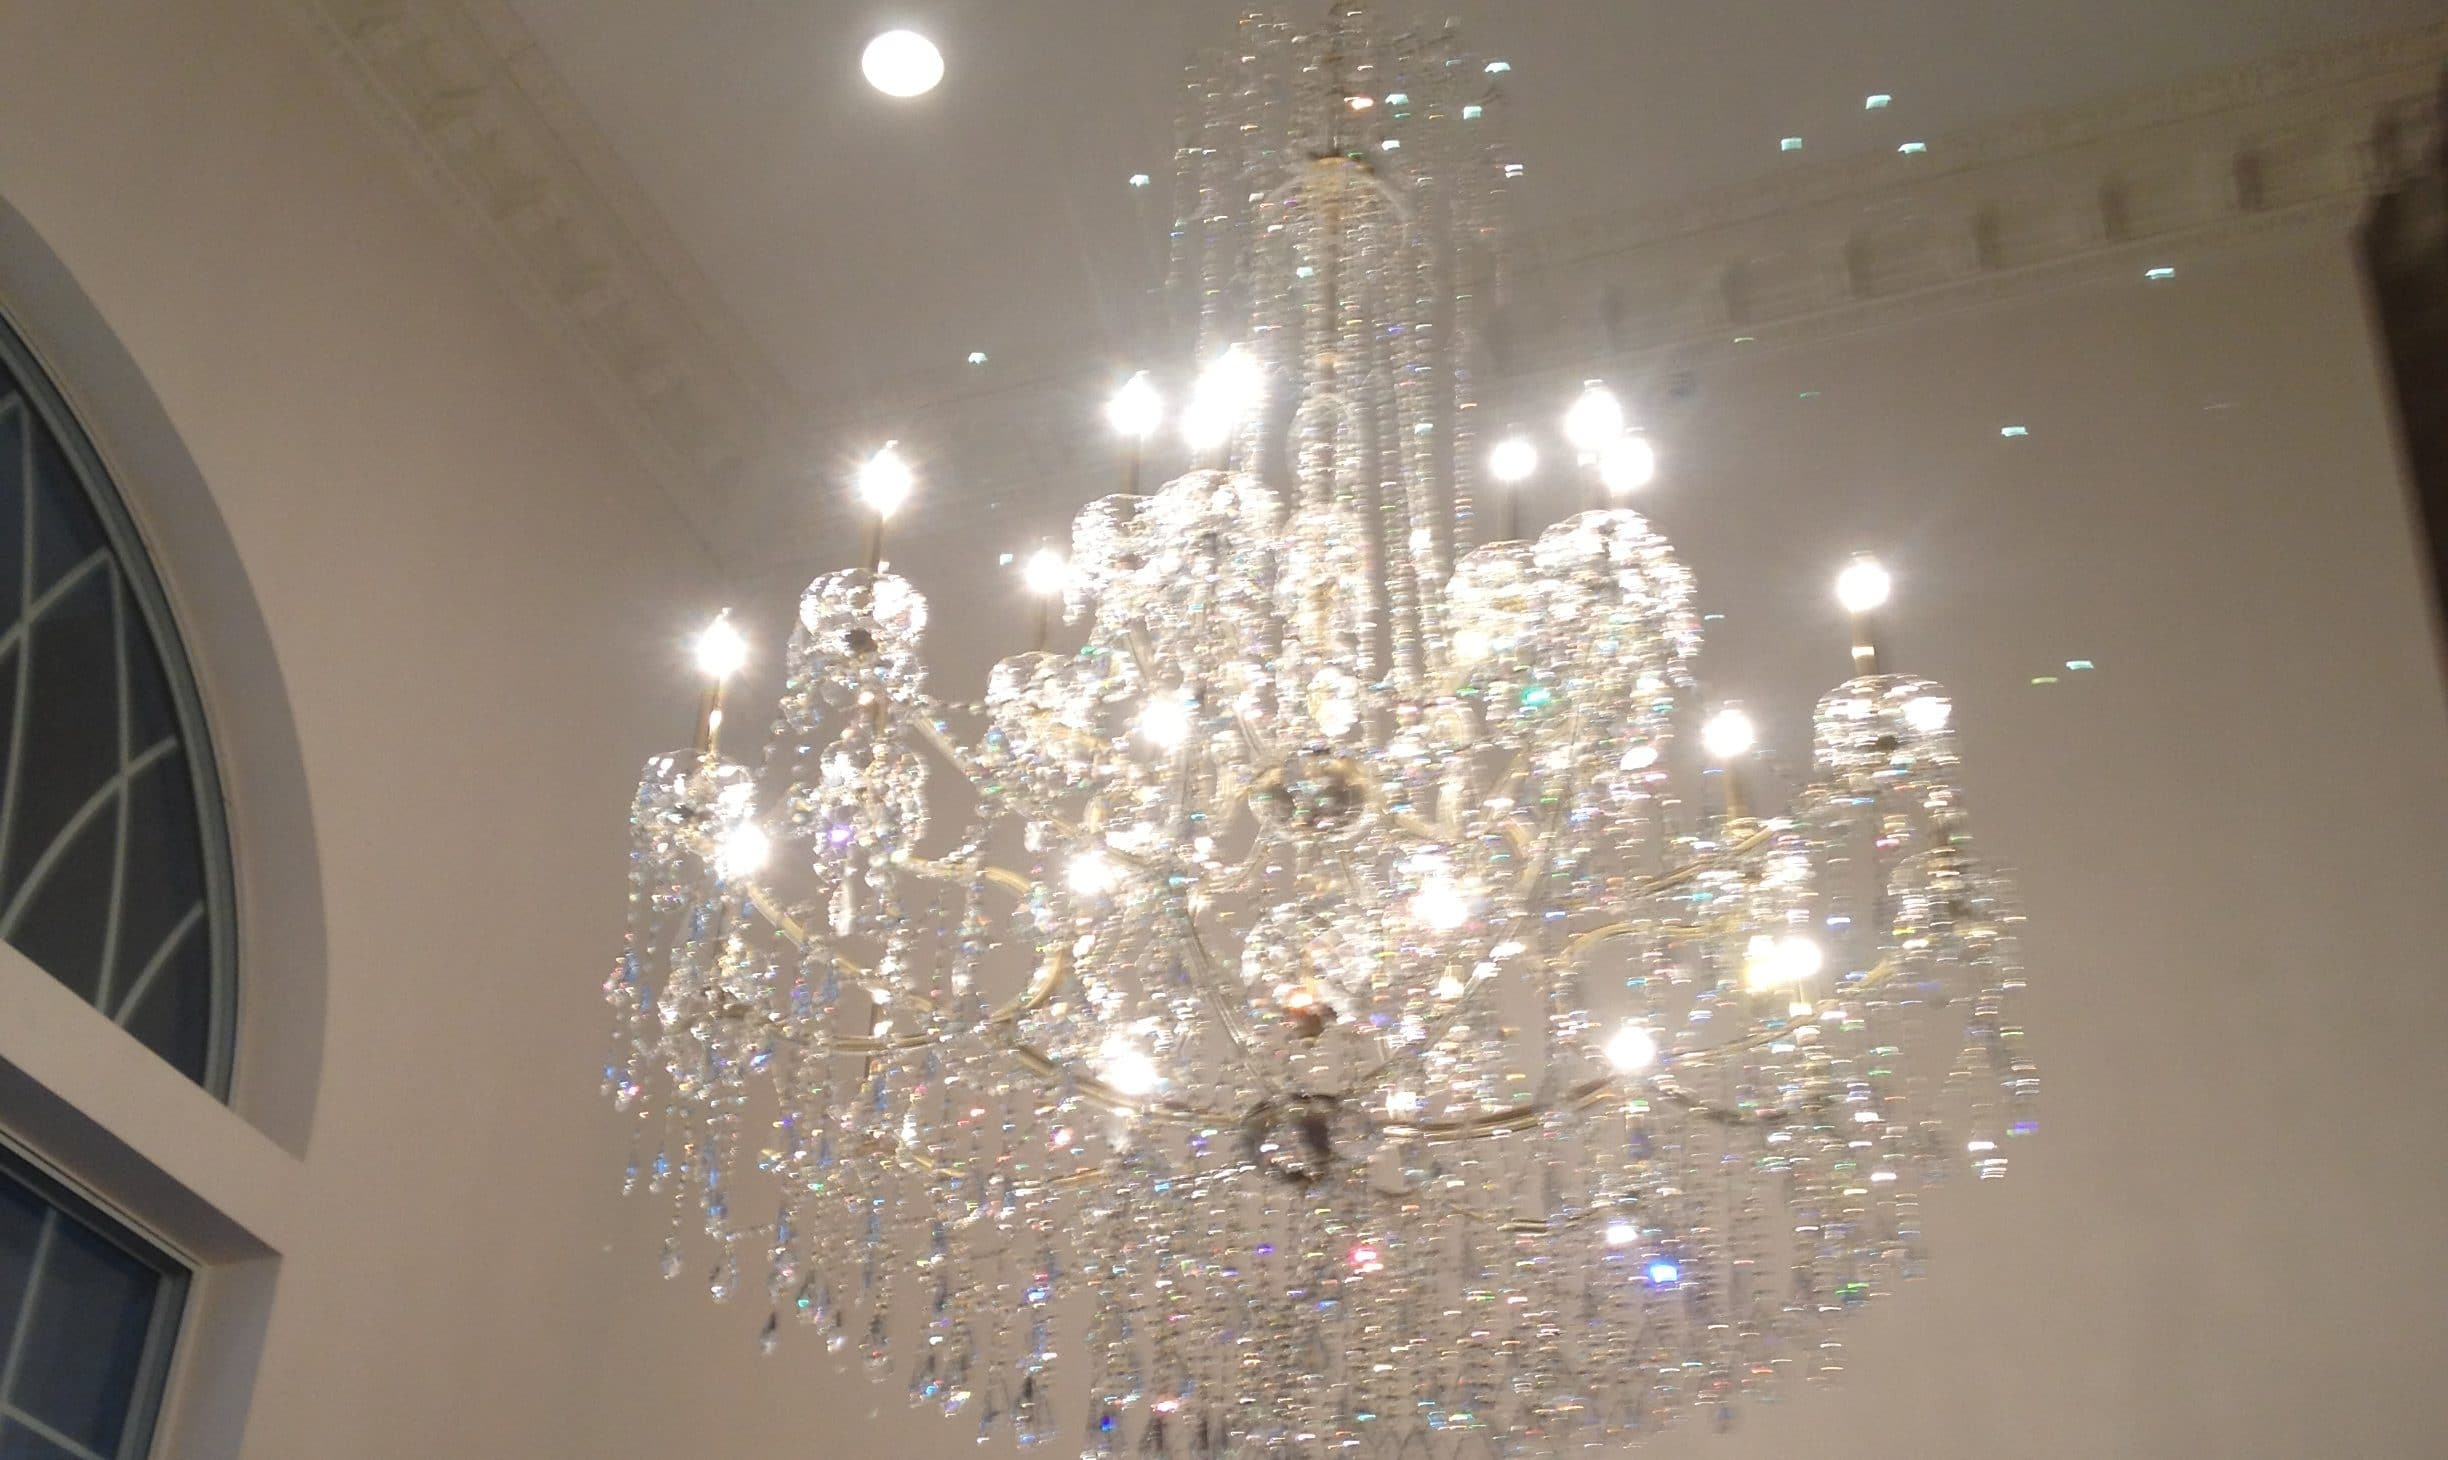 Chandelier Cleaning Dallas, TX